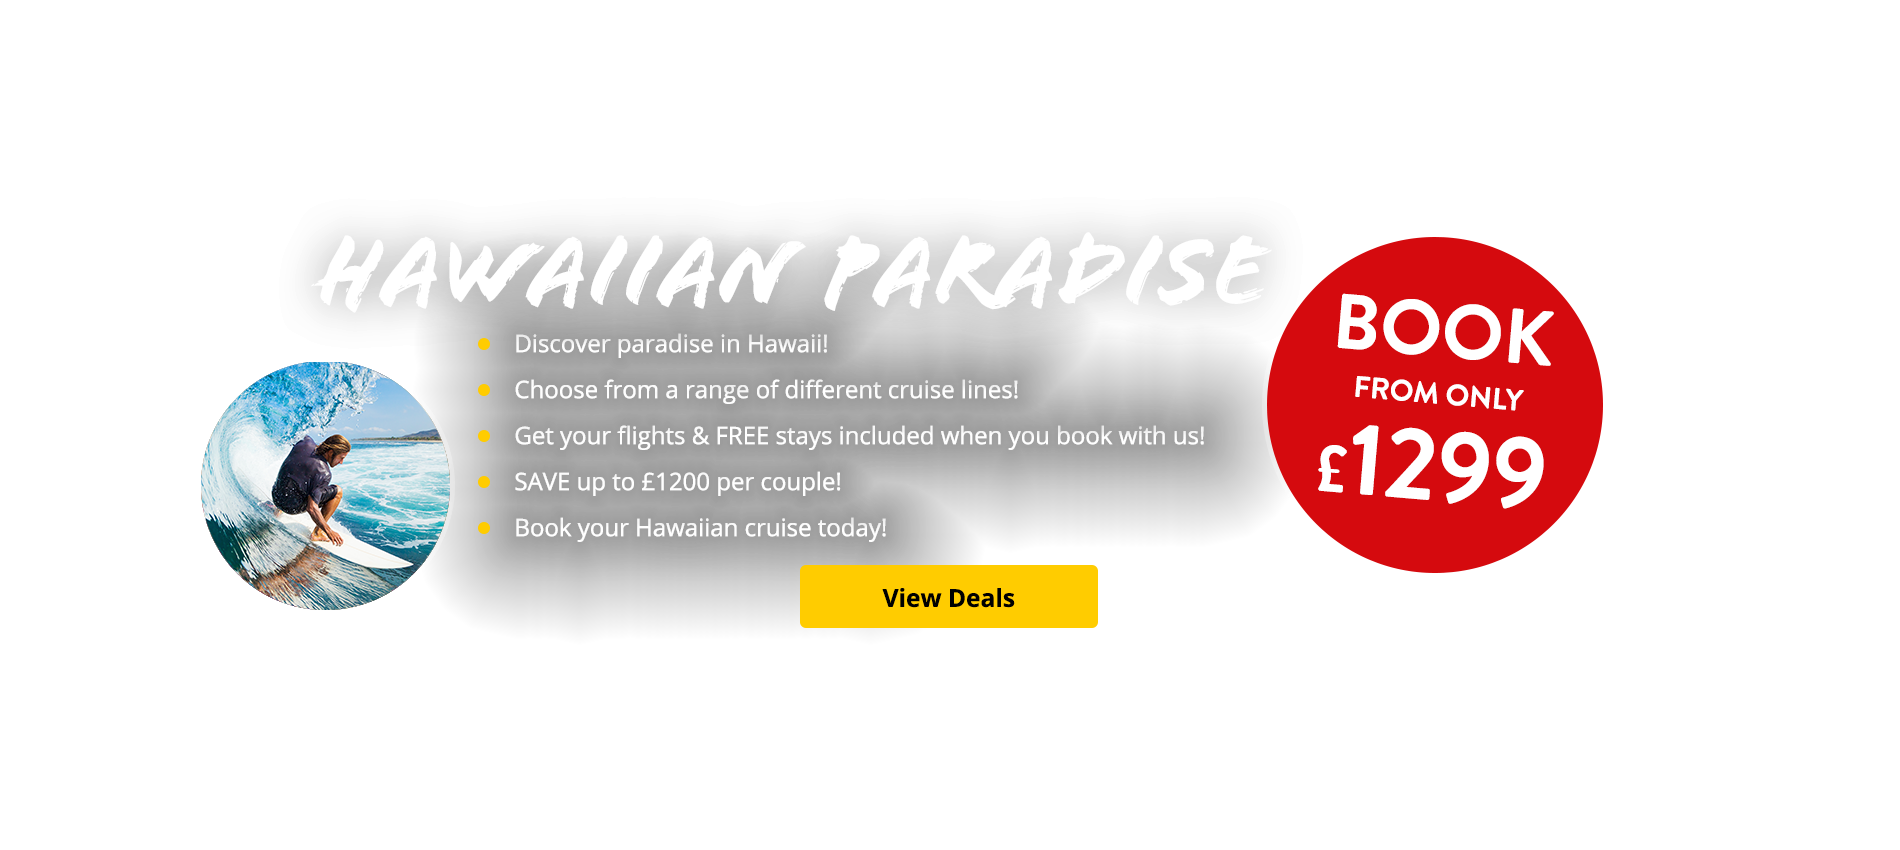 Discover paradise in Hawaii! Choose from a range of different cruise lines! Get your flights & FREE stays included when you book with us! SAVE up to £1200 per couple! Book your Hawaiian cruise today!